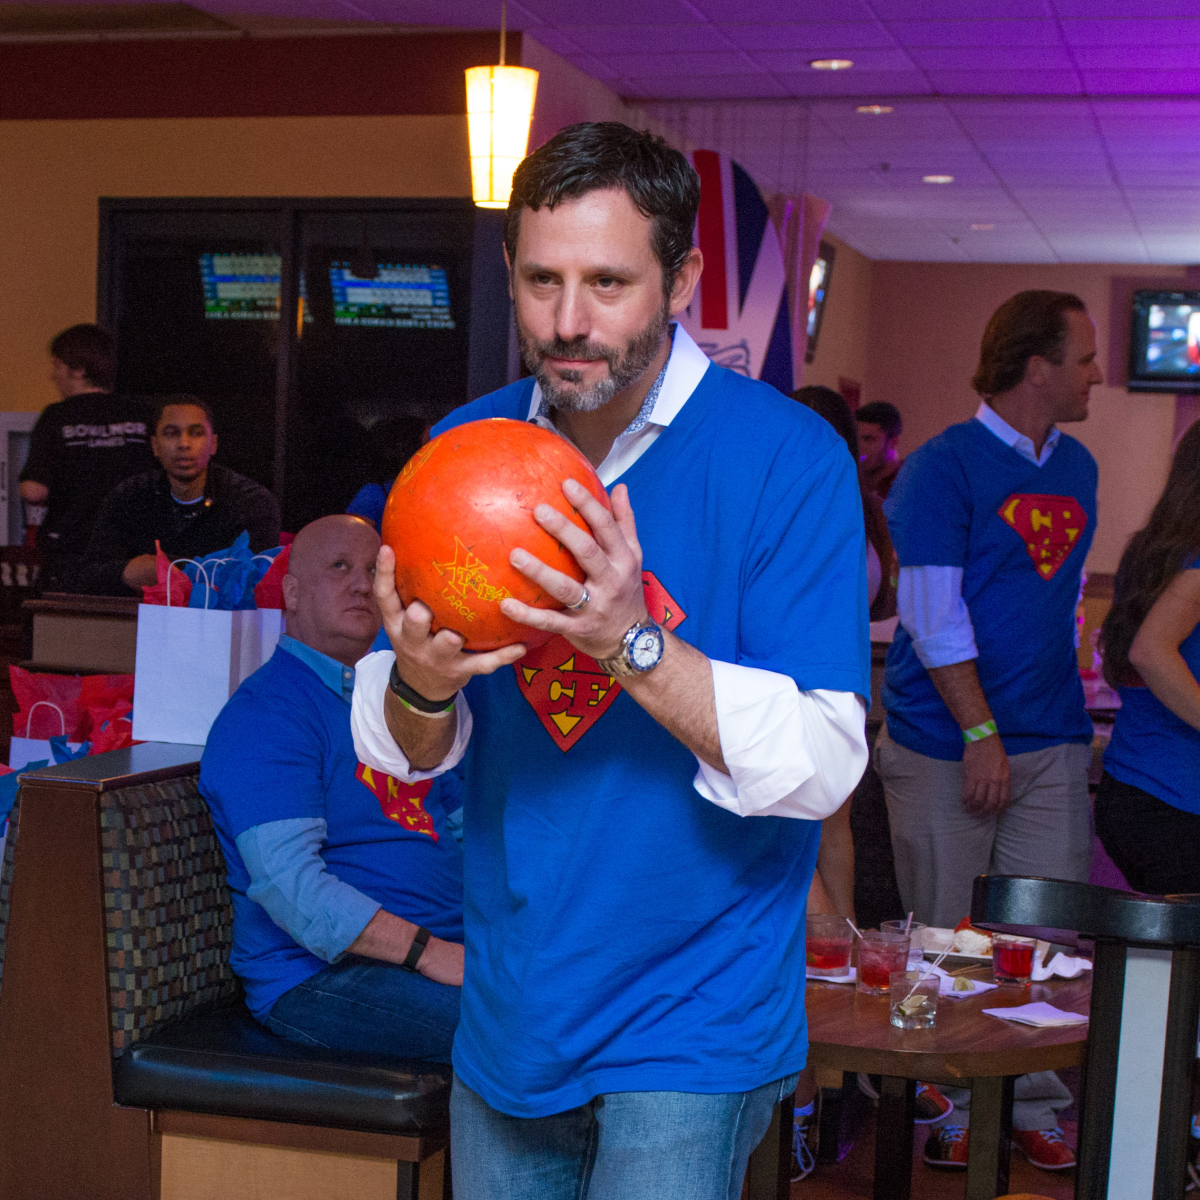 Chester Pitts bowling event Brad Marks